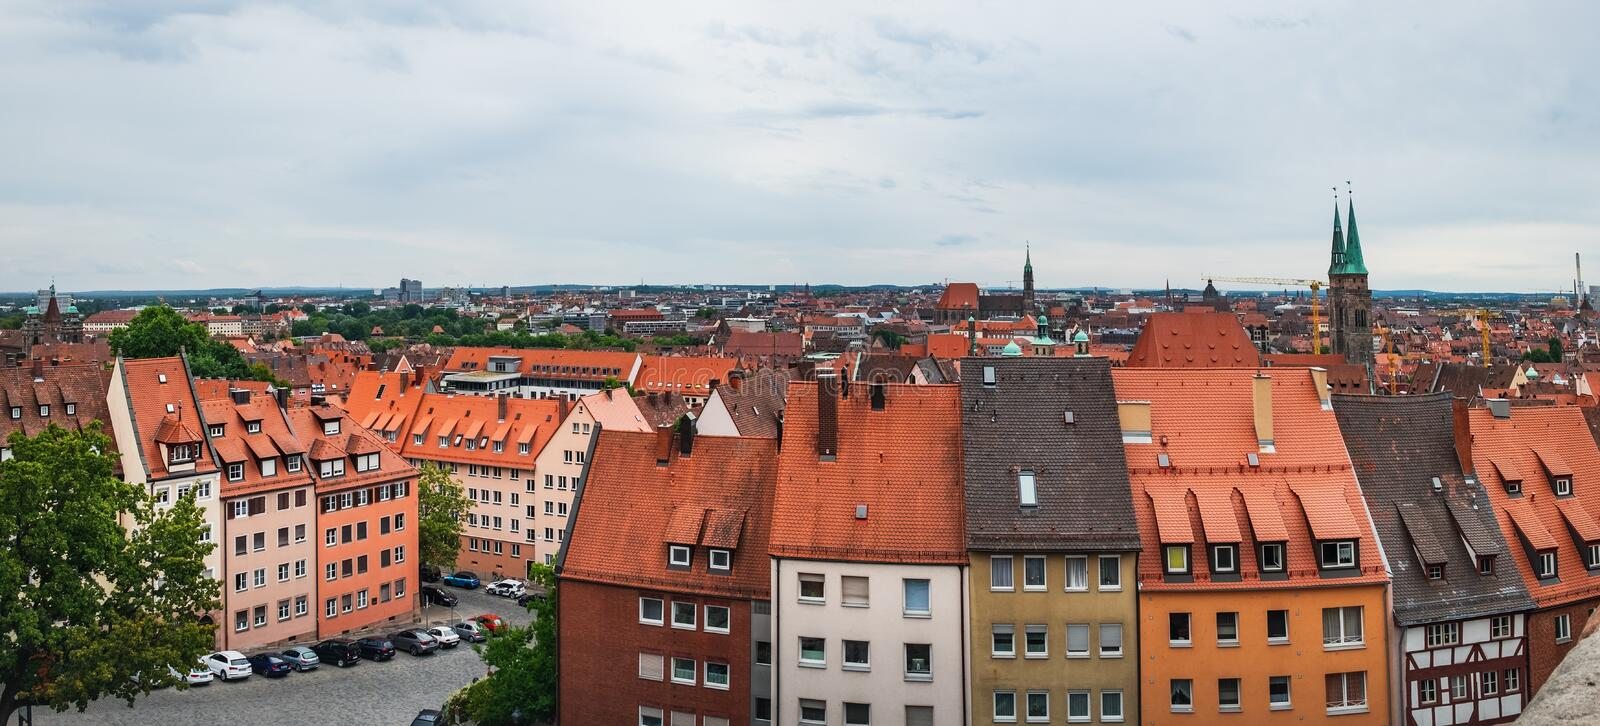 Cityscape view on the old town, Nurnberg, Germany stock images